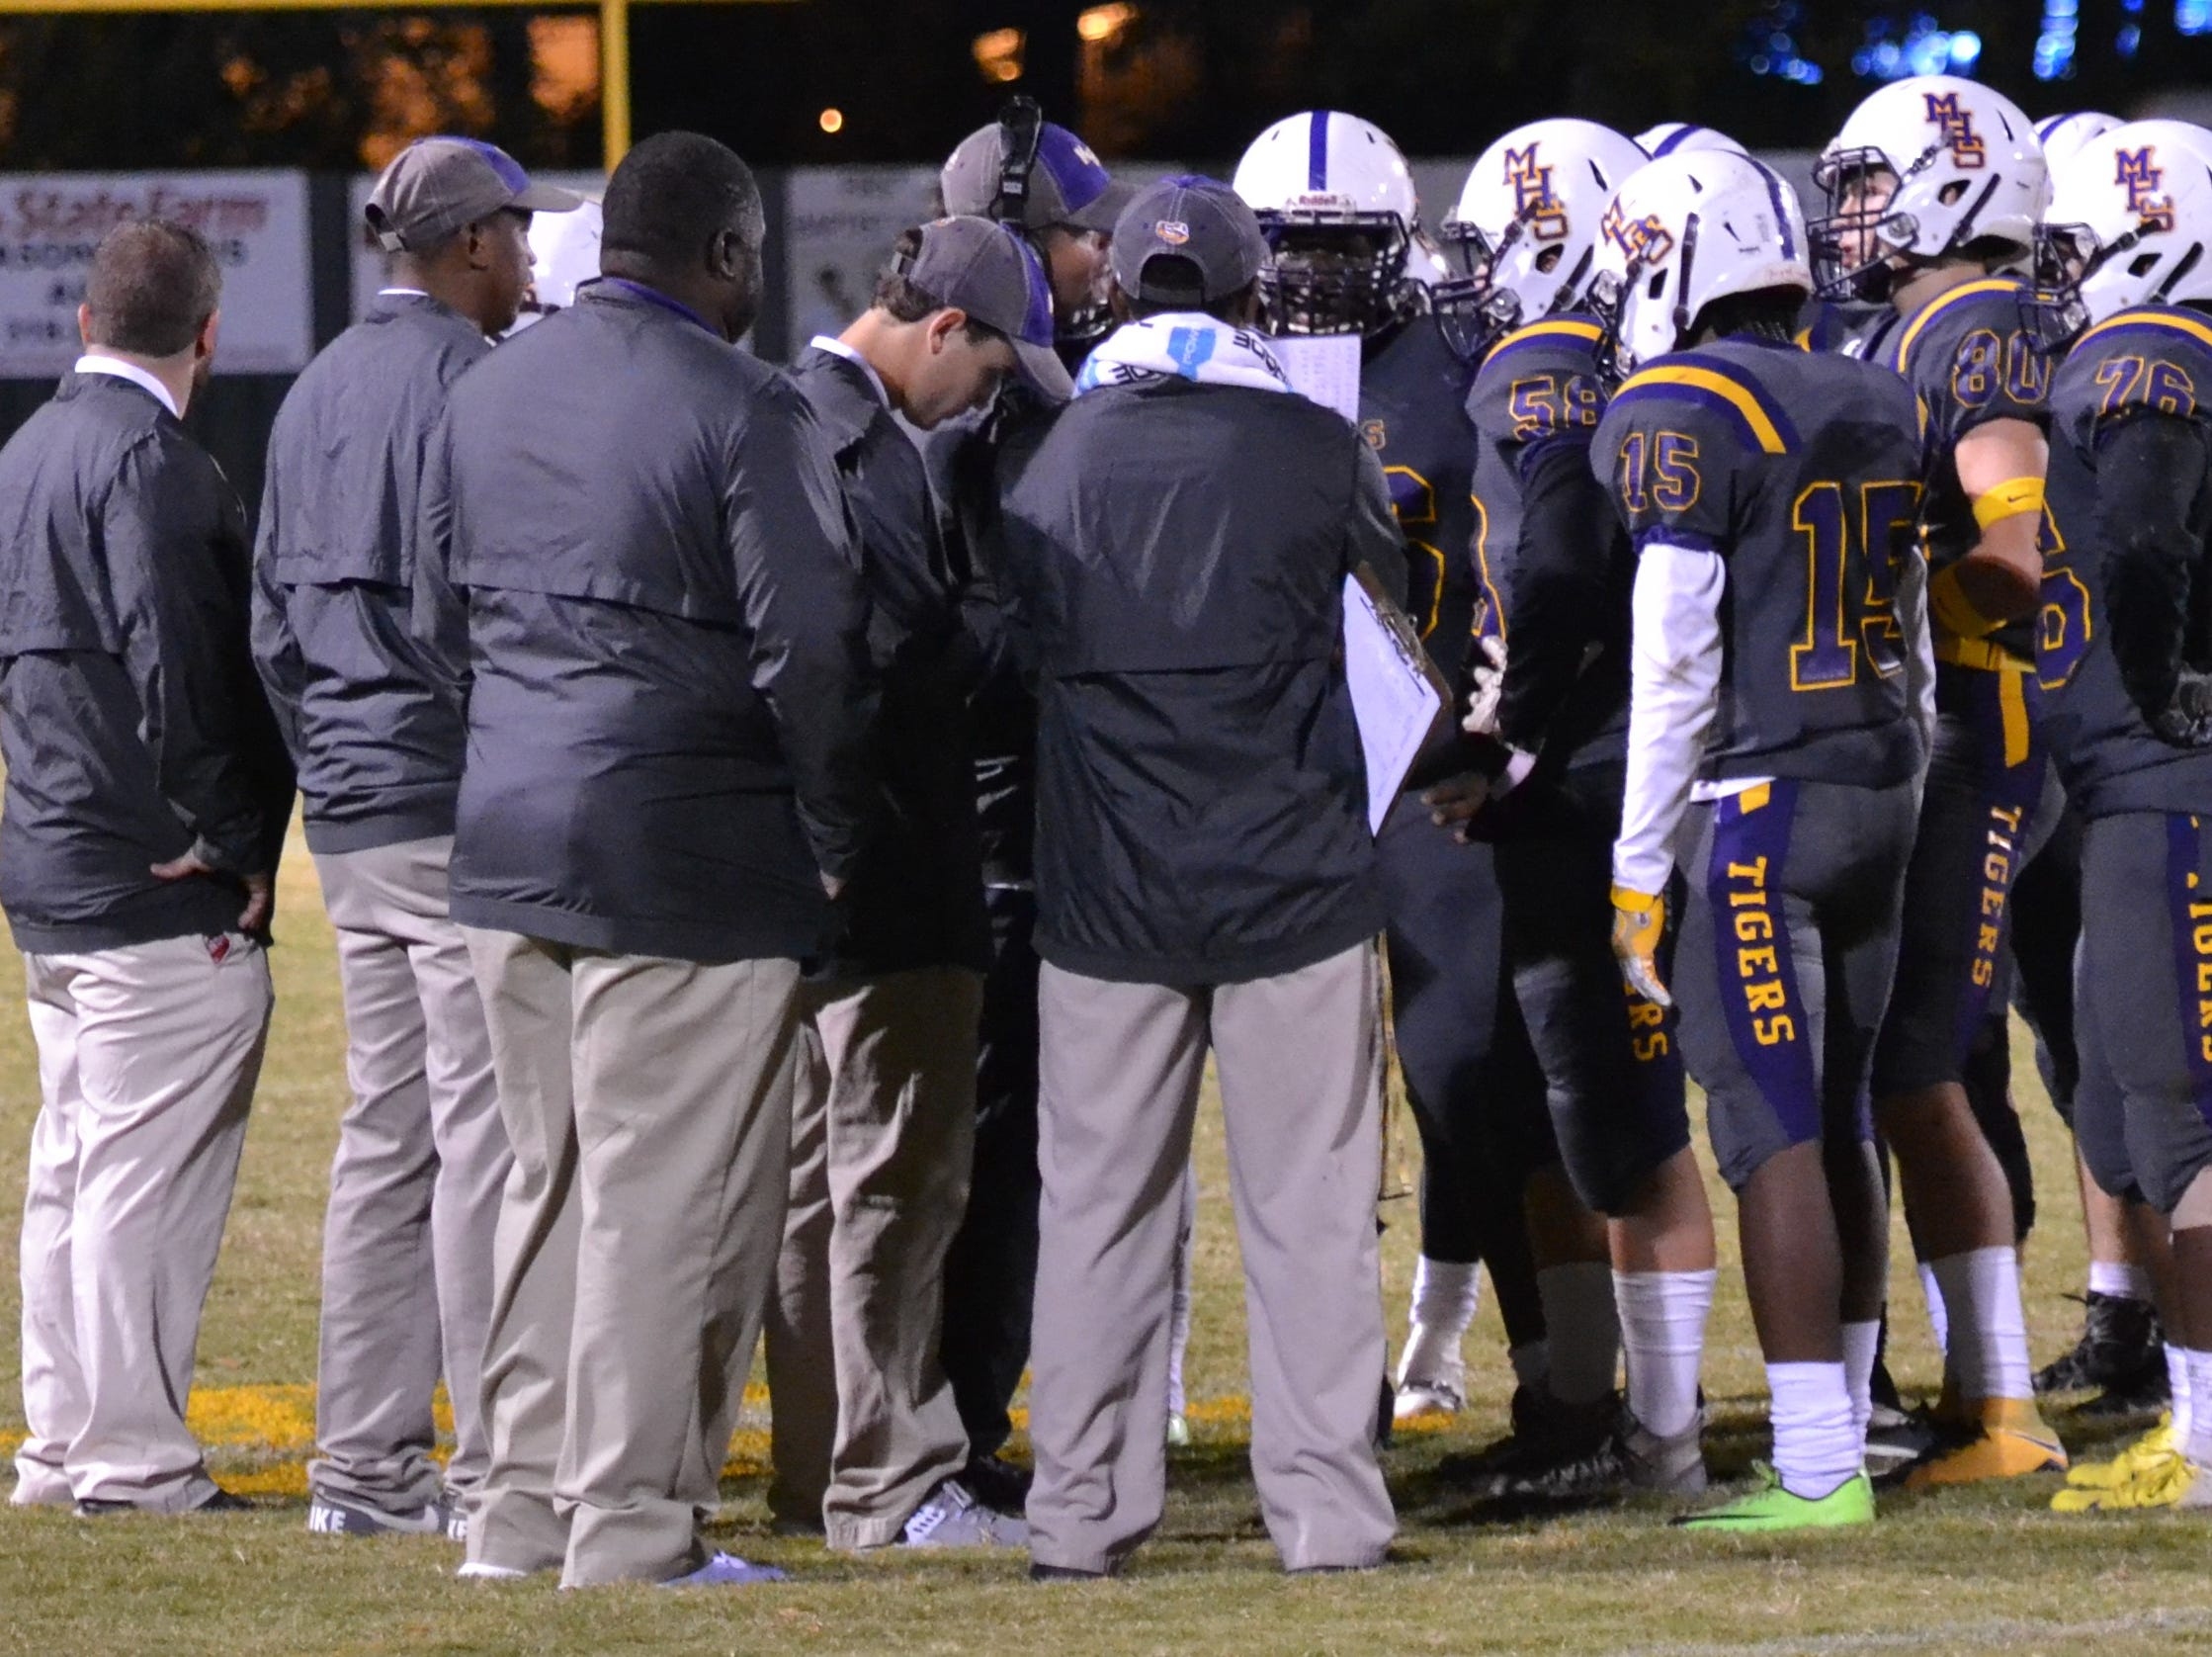 Marksville coach J.T. Dunbar meets with his team during a time out. Marksville and Caldwell met in the regular season finale Friday night with Caldwell edging Marksville 13-8.